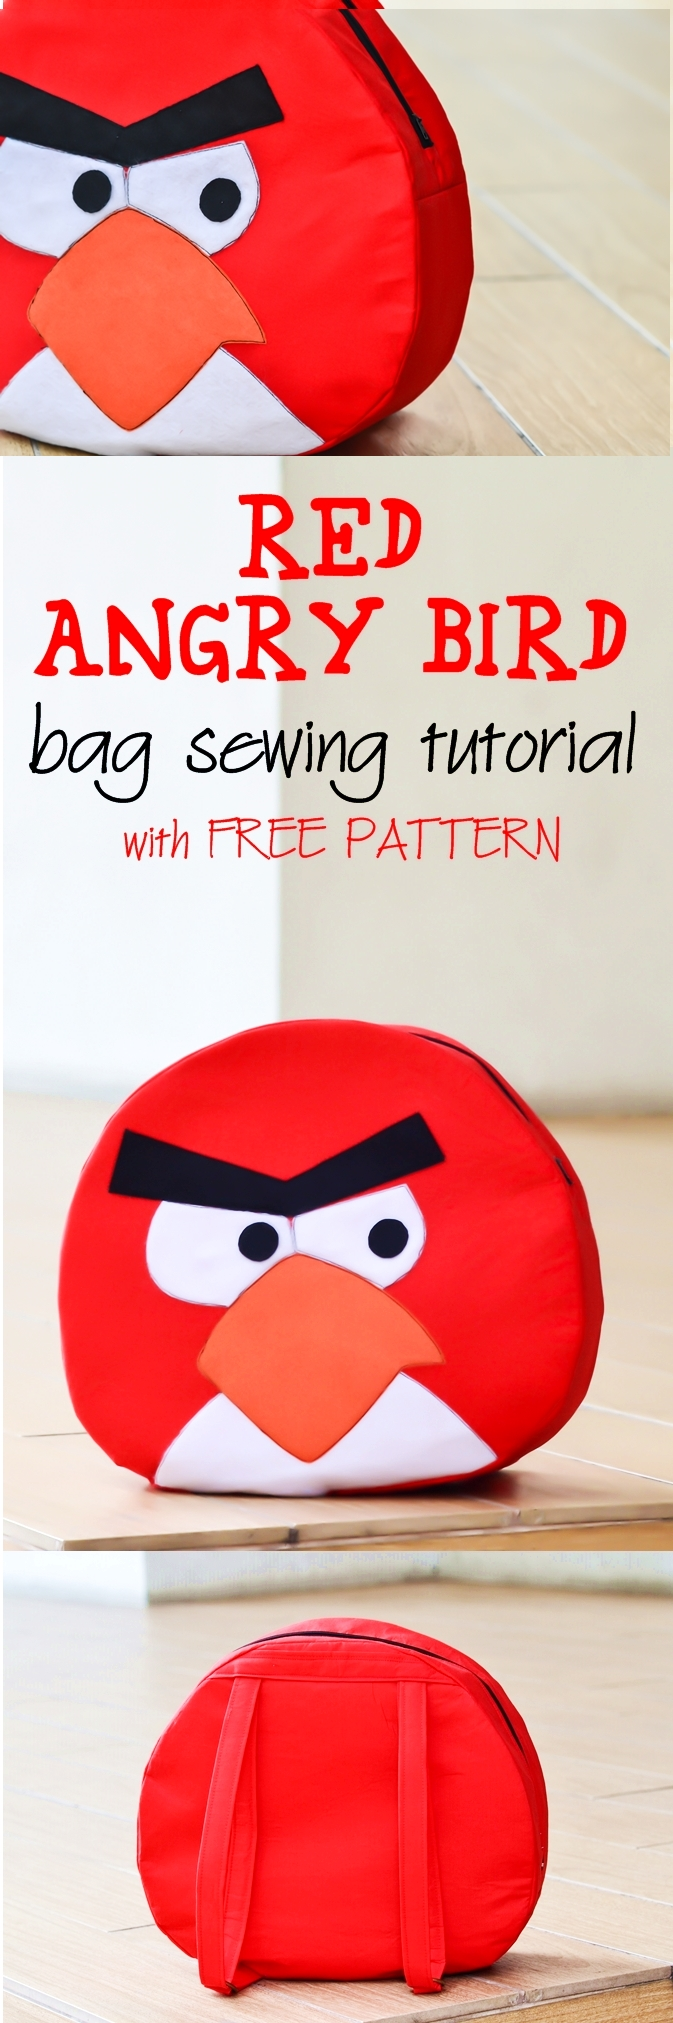 How to make Angry Birds Bag with FREE PATTERN on sewsomestuff.com. Learn to make a super cute Angry bird bag for your little crazy angry bird fans. This tutorial also has A FREE SEWING PATTERN. Check it out now!